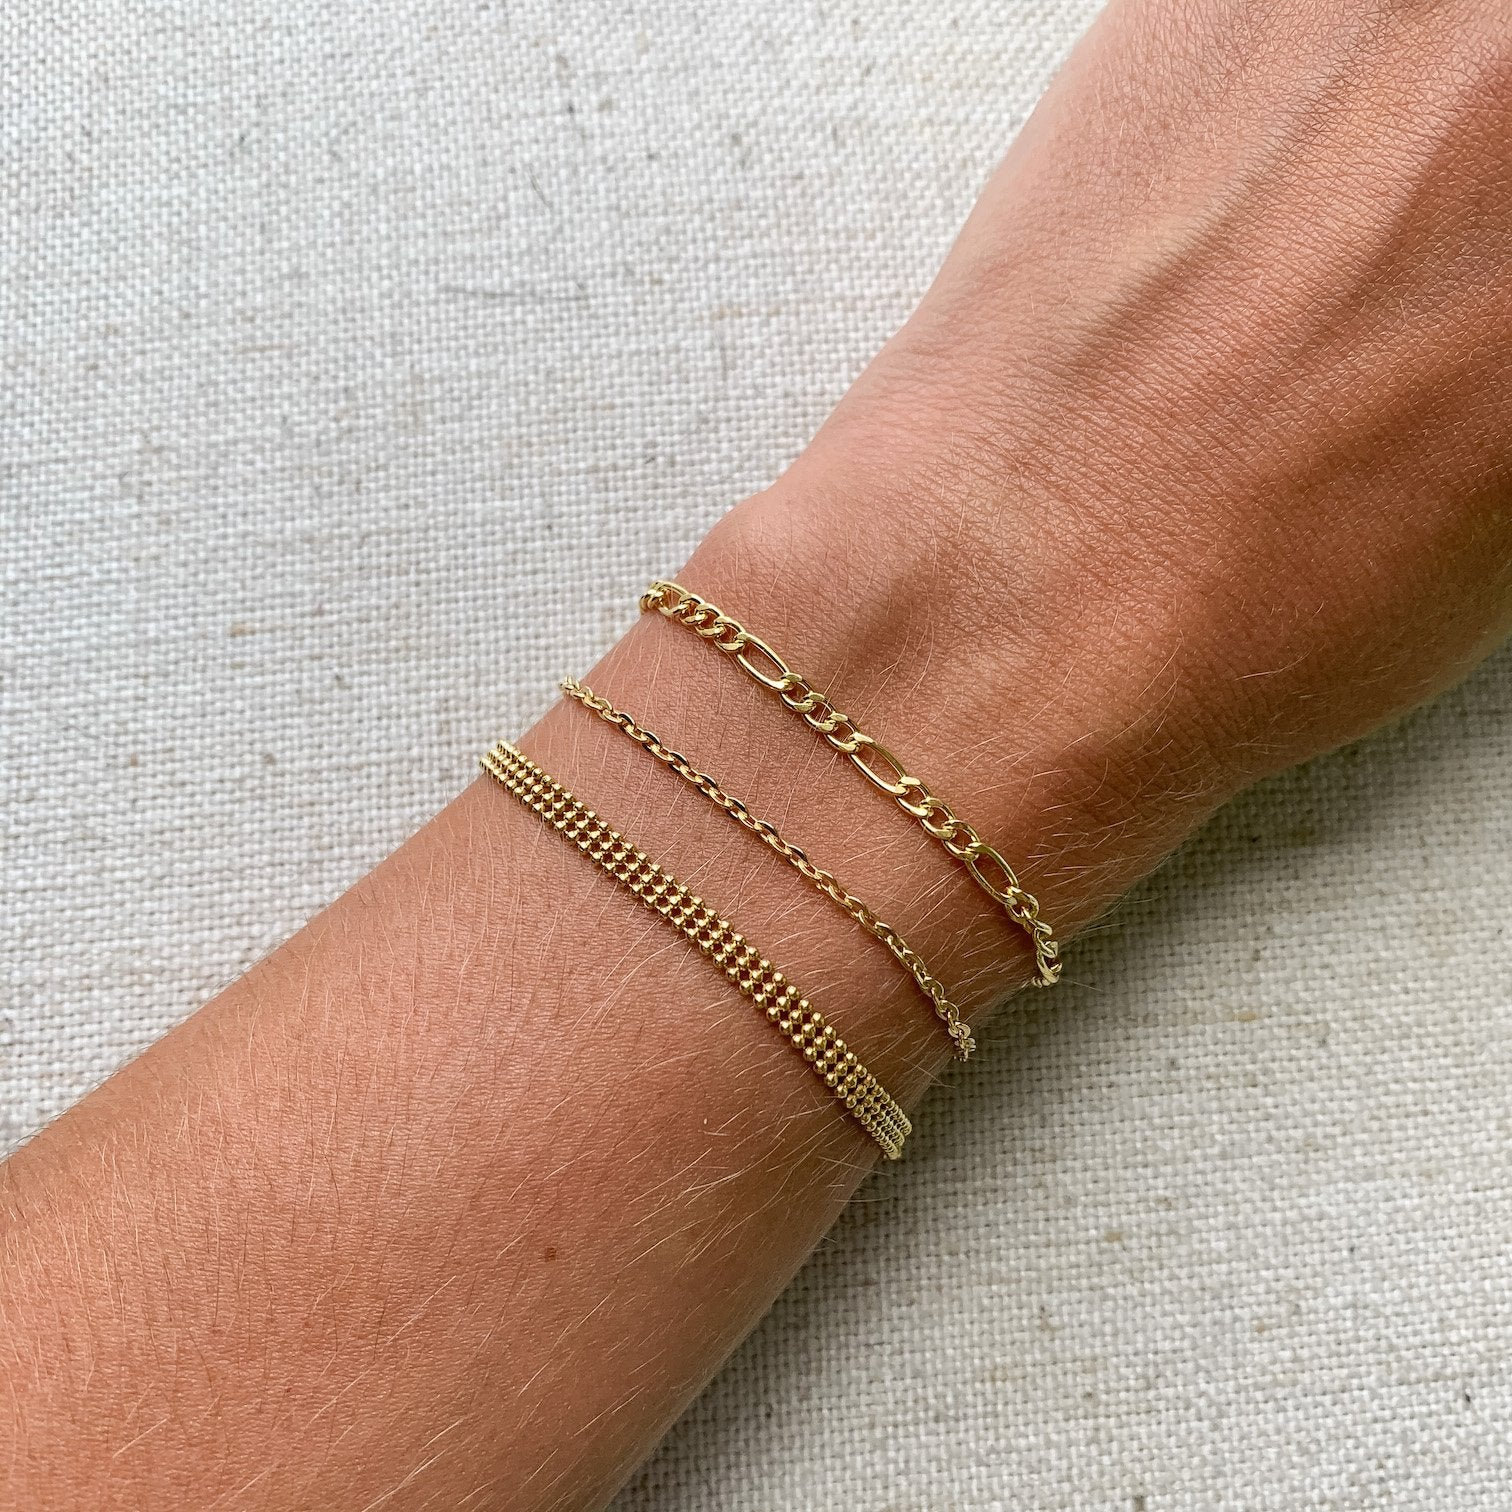 14k gold classic bracelet chains elegant and chic kemmi collection jewelry